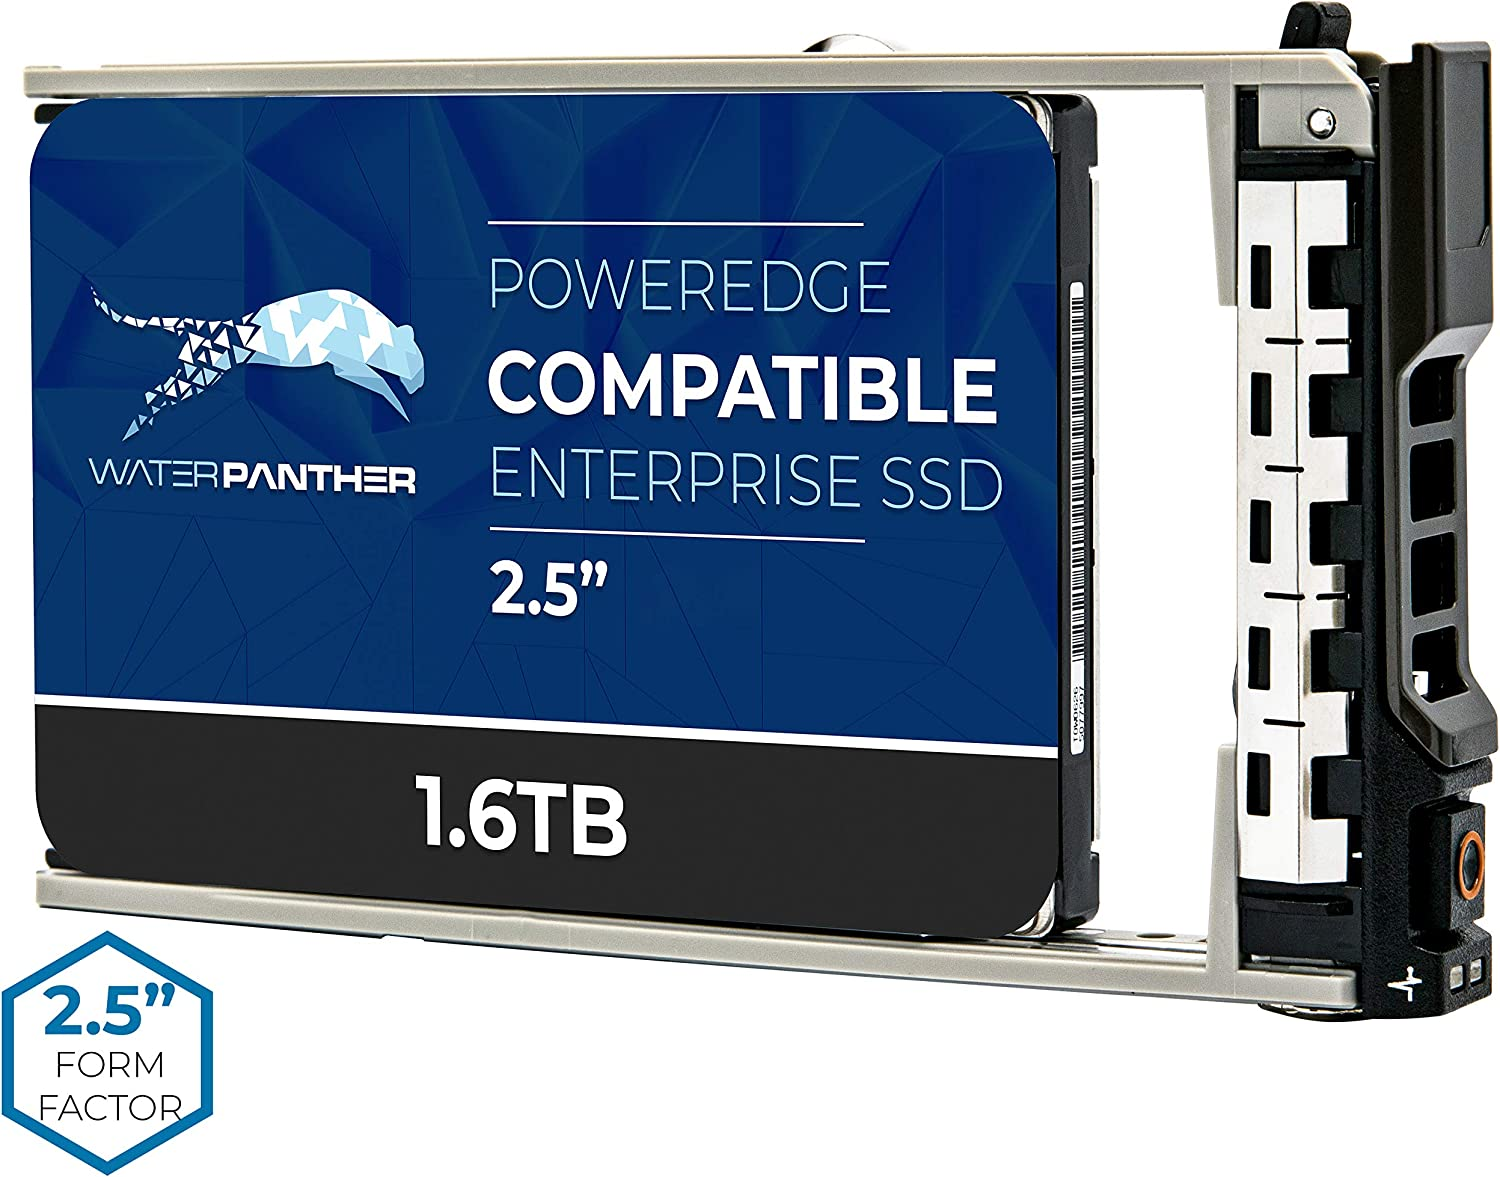 1.6TB SAS 12Gbps 2.5-Inch 15mm Enterprise SSD in 13G Tray Compatible with Dell PowerEdge Servers PM3 W5PP5 77K16 077K16 NF76W 0NF76W 400-AEJR 400-ALYR